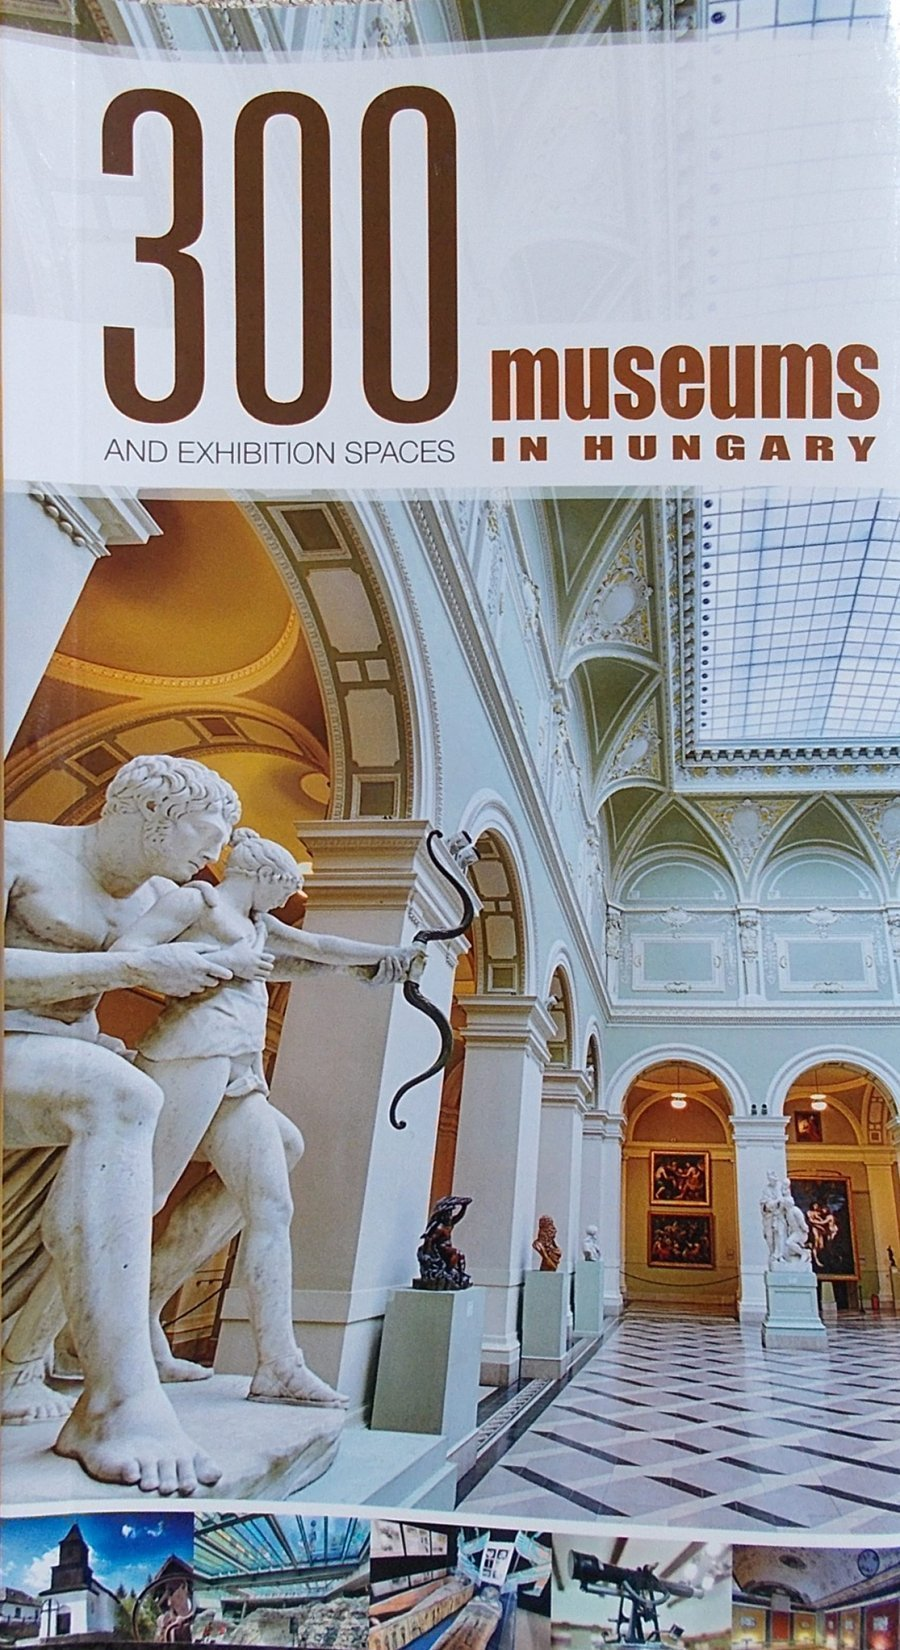 300 museums in Hungary and Exhibition Spaces